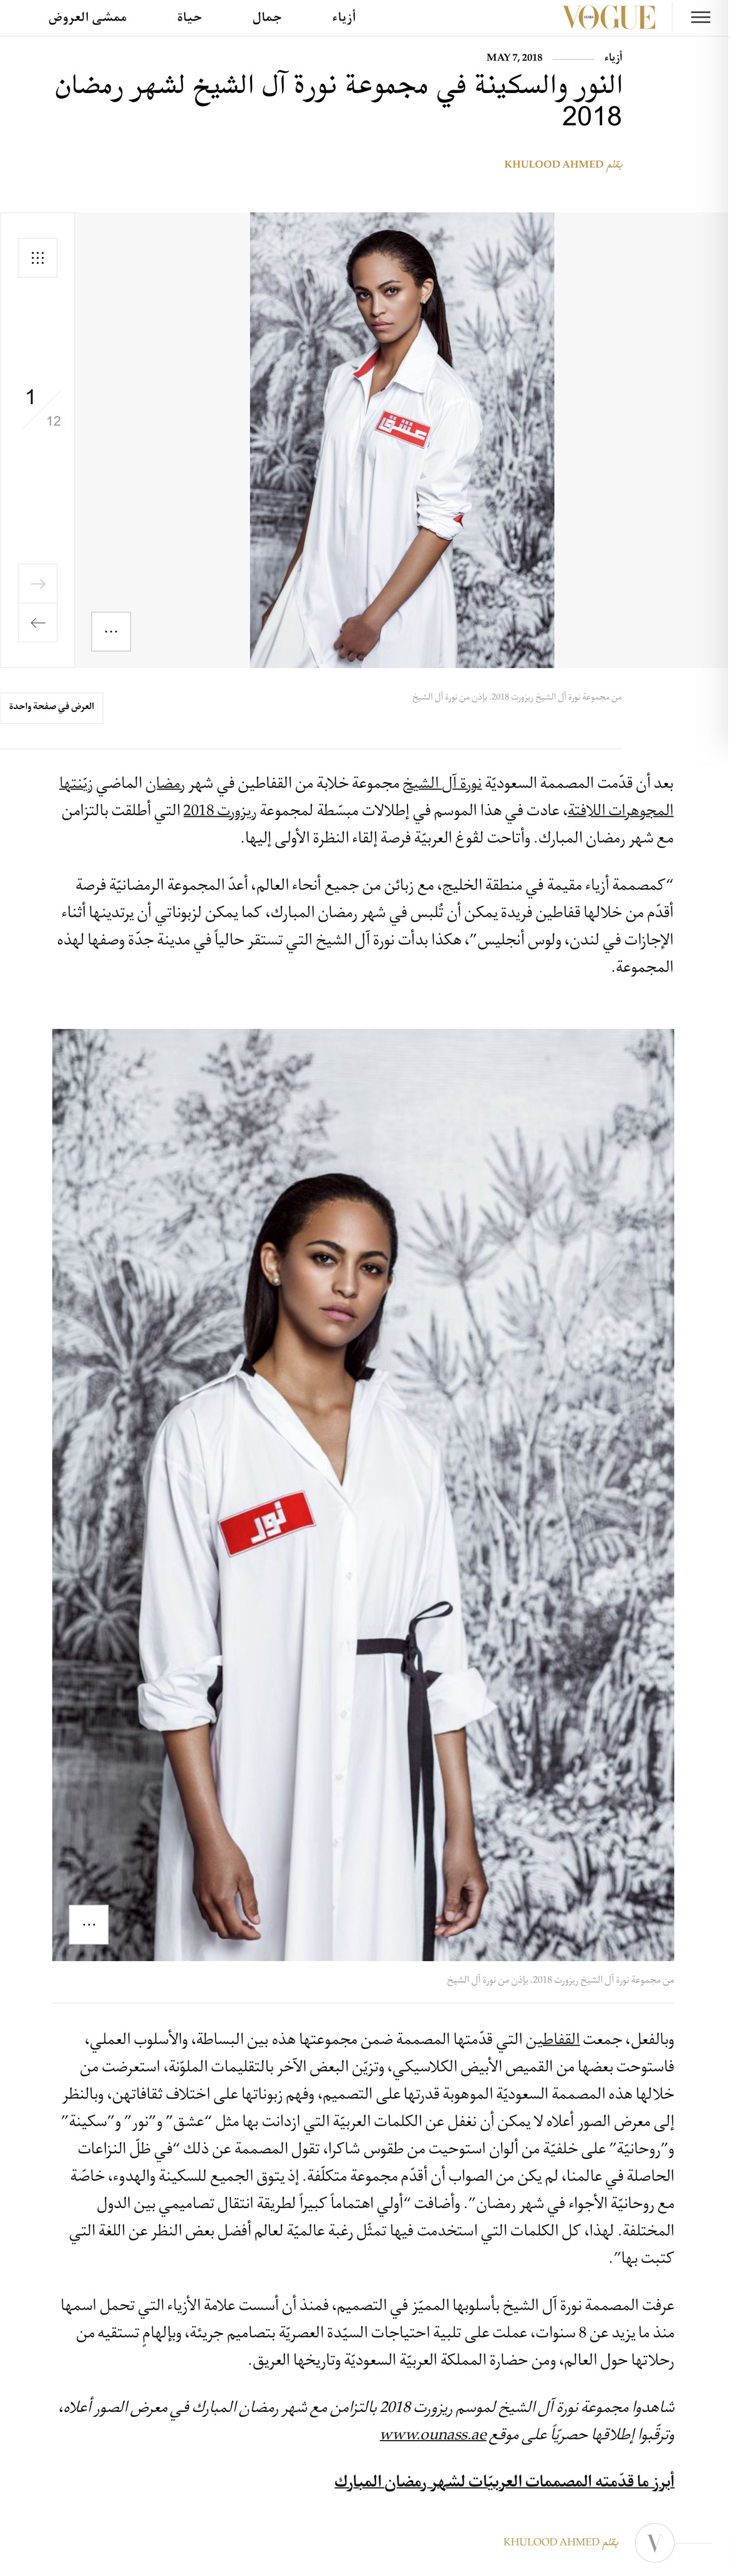 2018-20may-20vogue-20arabia-20arb